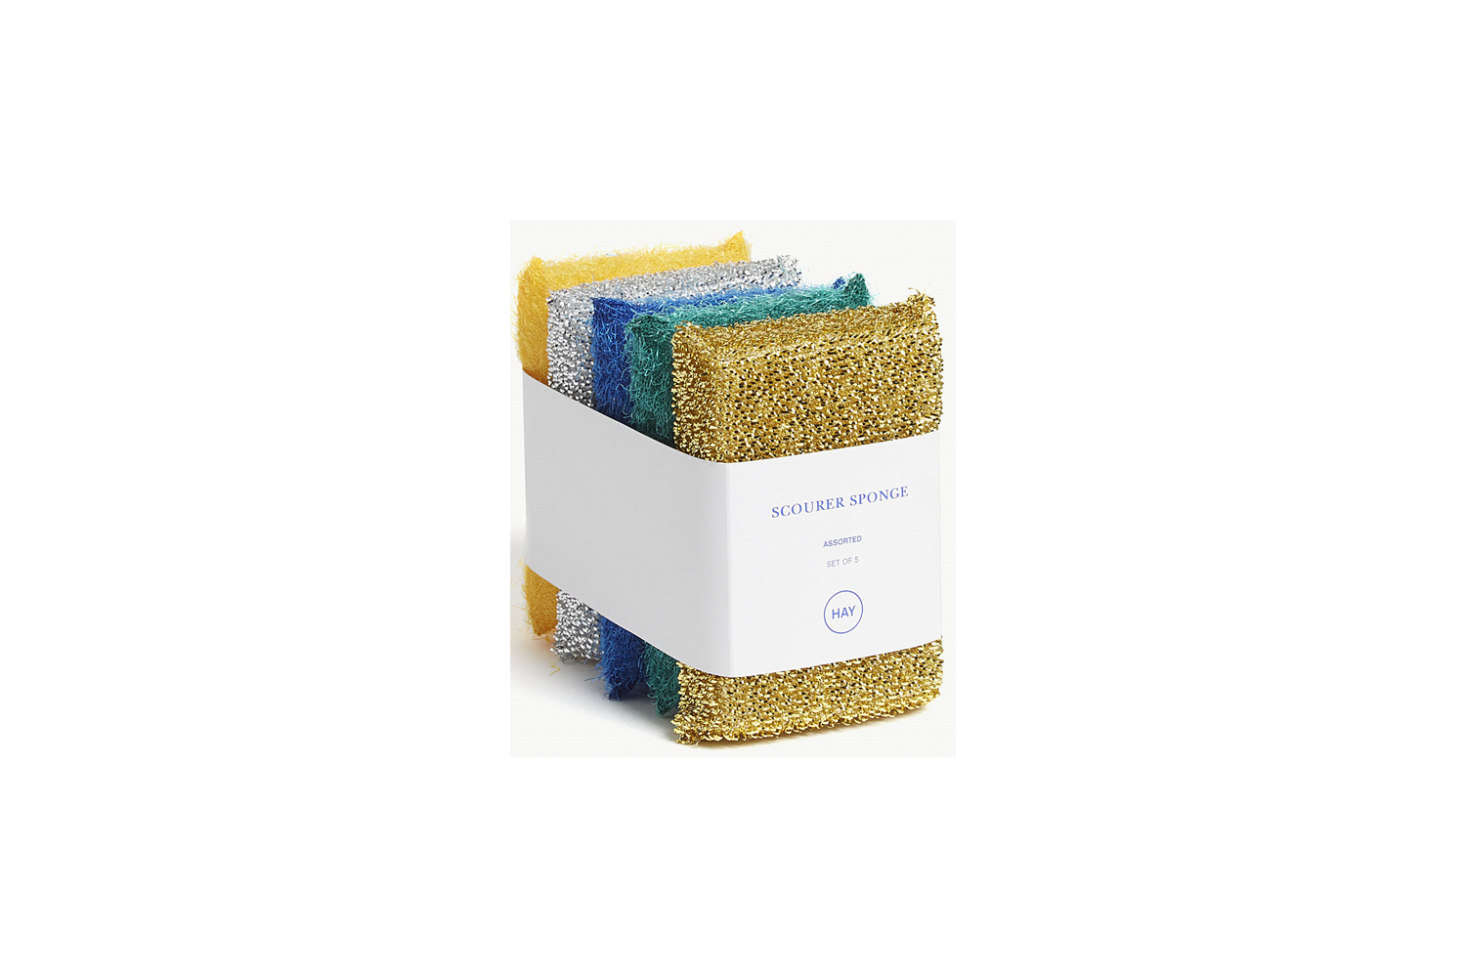 Hay makes Metallic Scourer Sponges in range of tones exclusively for Selfridges; £8 for a set of five.